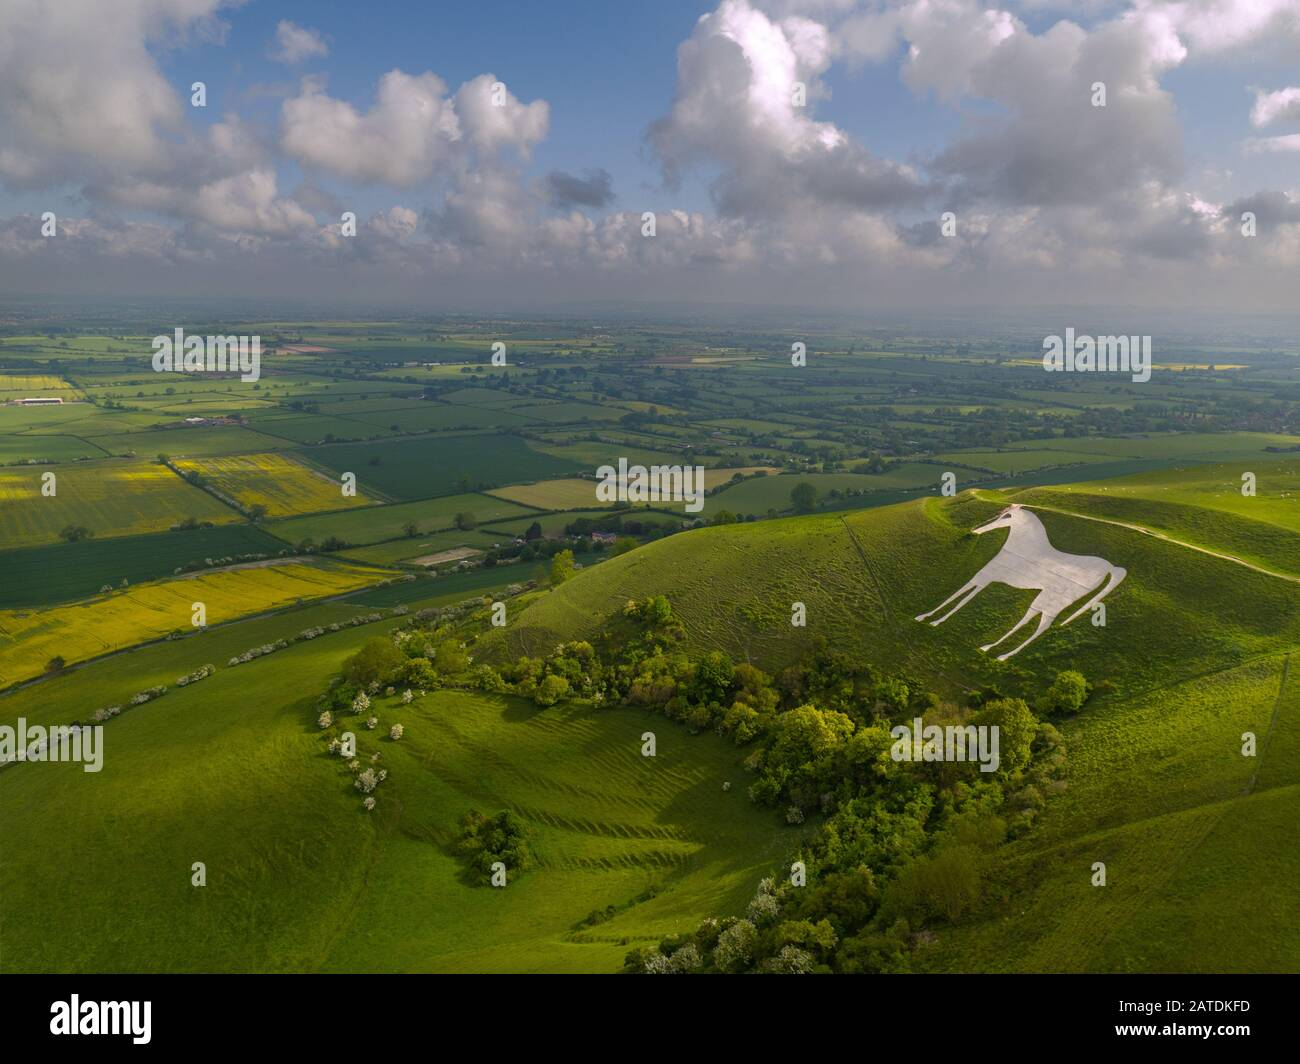 An aerial image of the historic Westbury White Horse in Wiltshire. Picture taken from a drone. Stock Photo